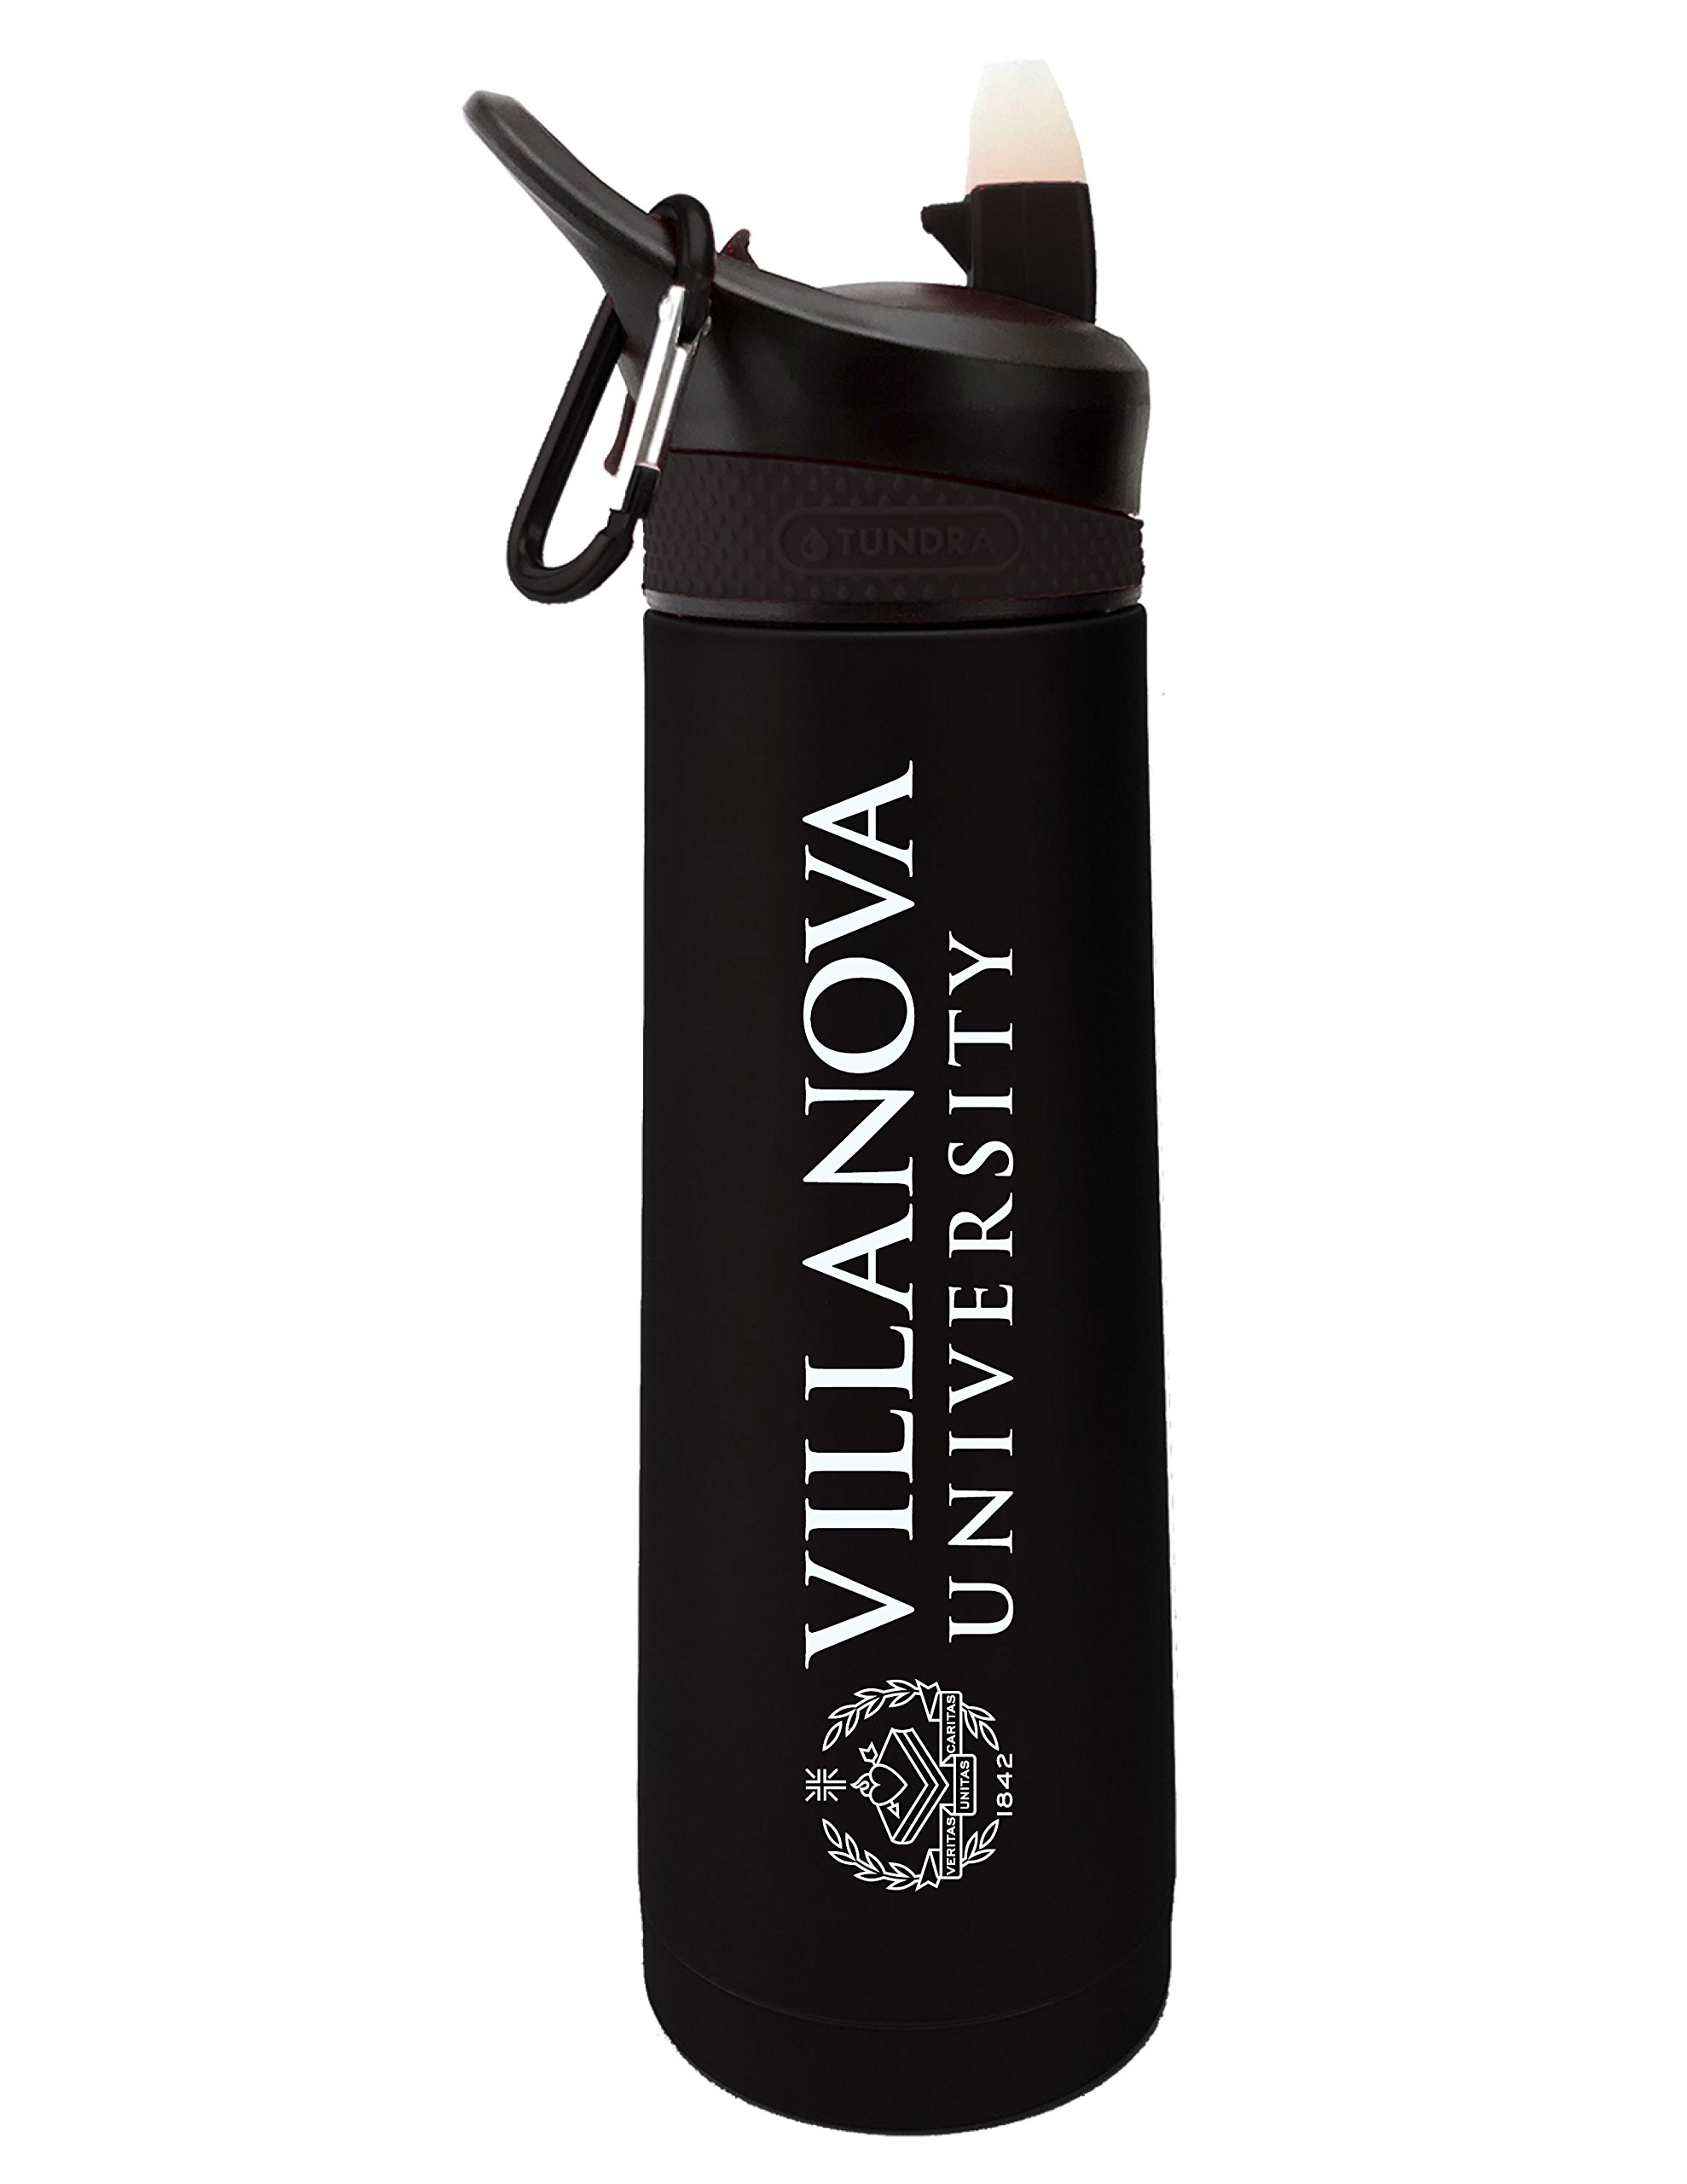 Fanatic Group Villanova University Dual Walled Stainless Steel Sports Bottle, Design 1 - Black